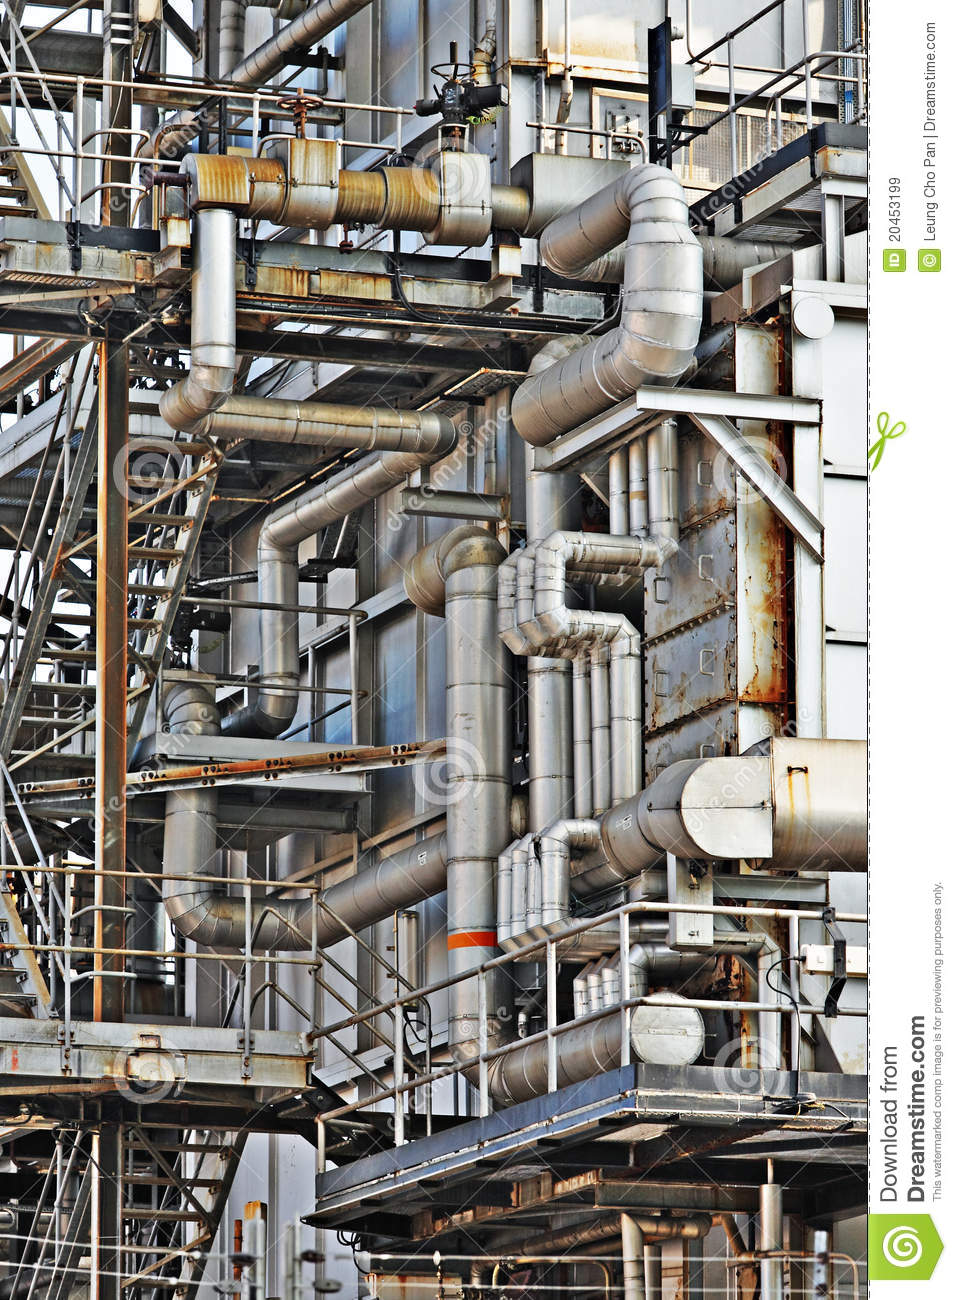 Industrial Steel Pipes : Industrial building steel pipe royalty free stock images